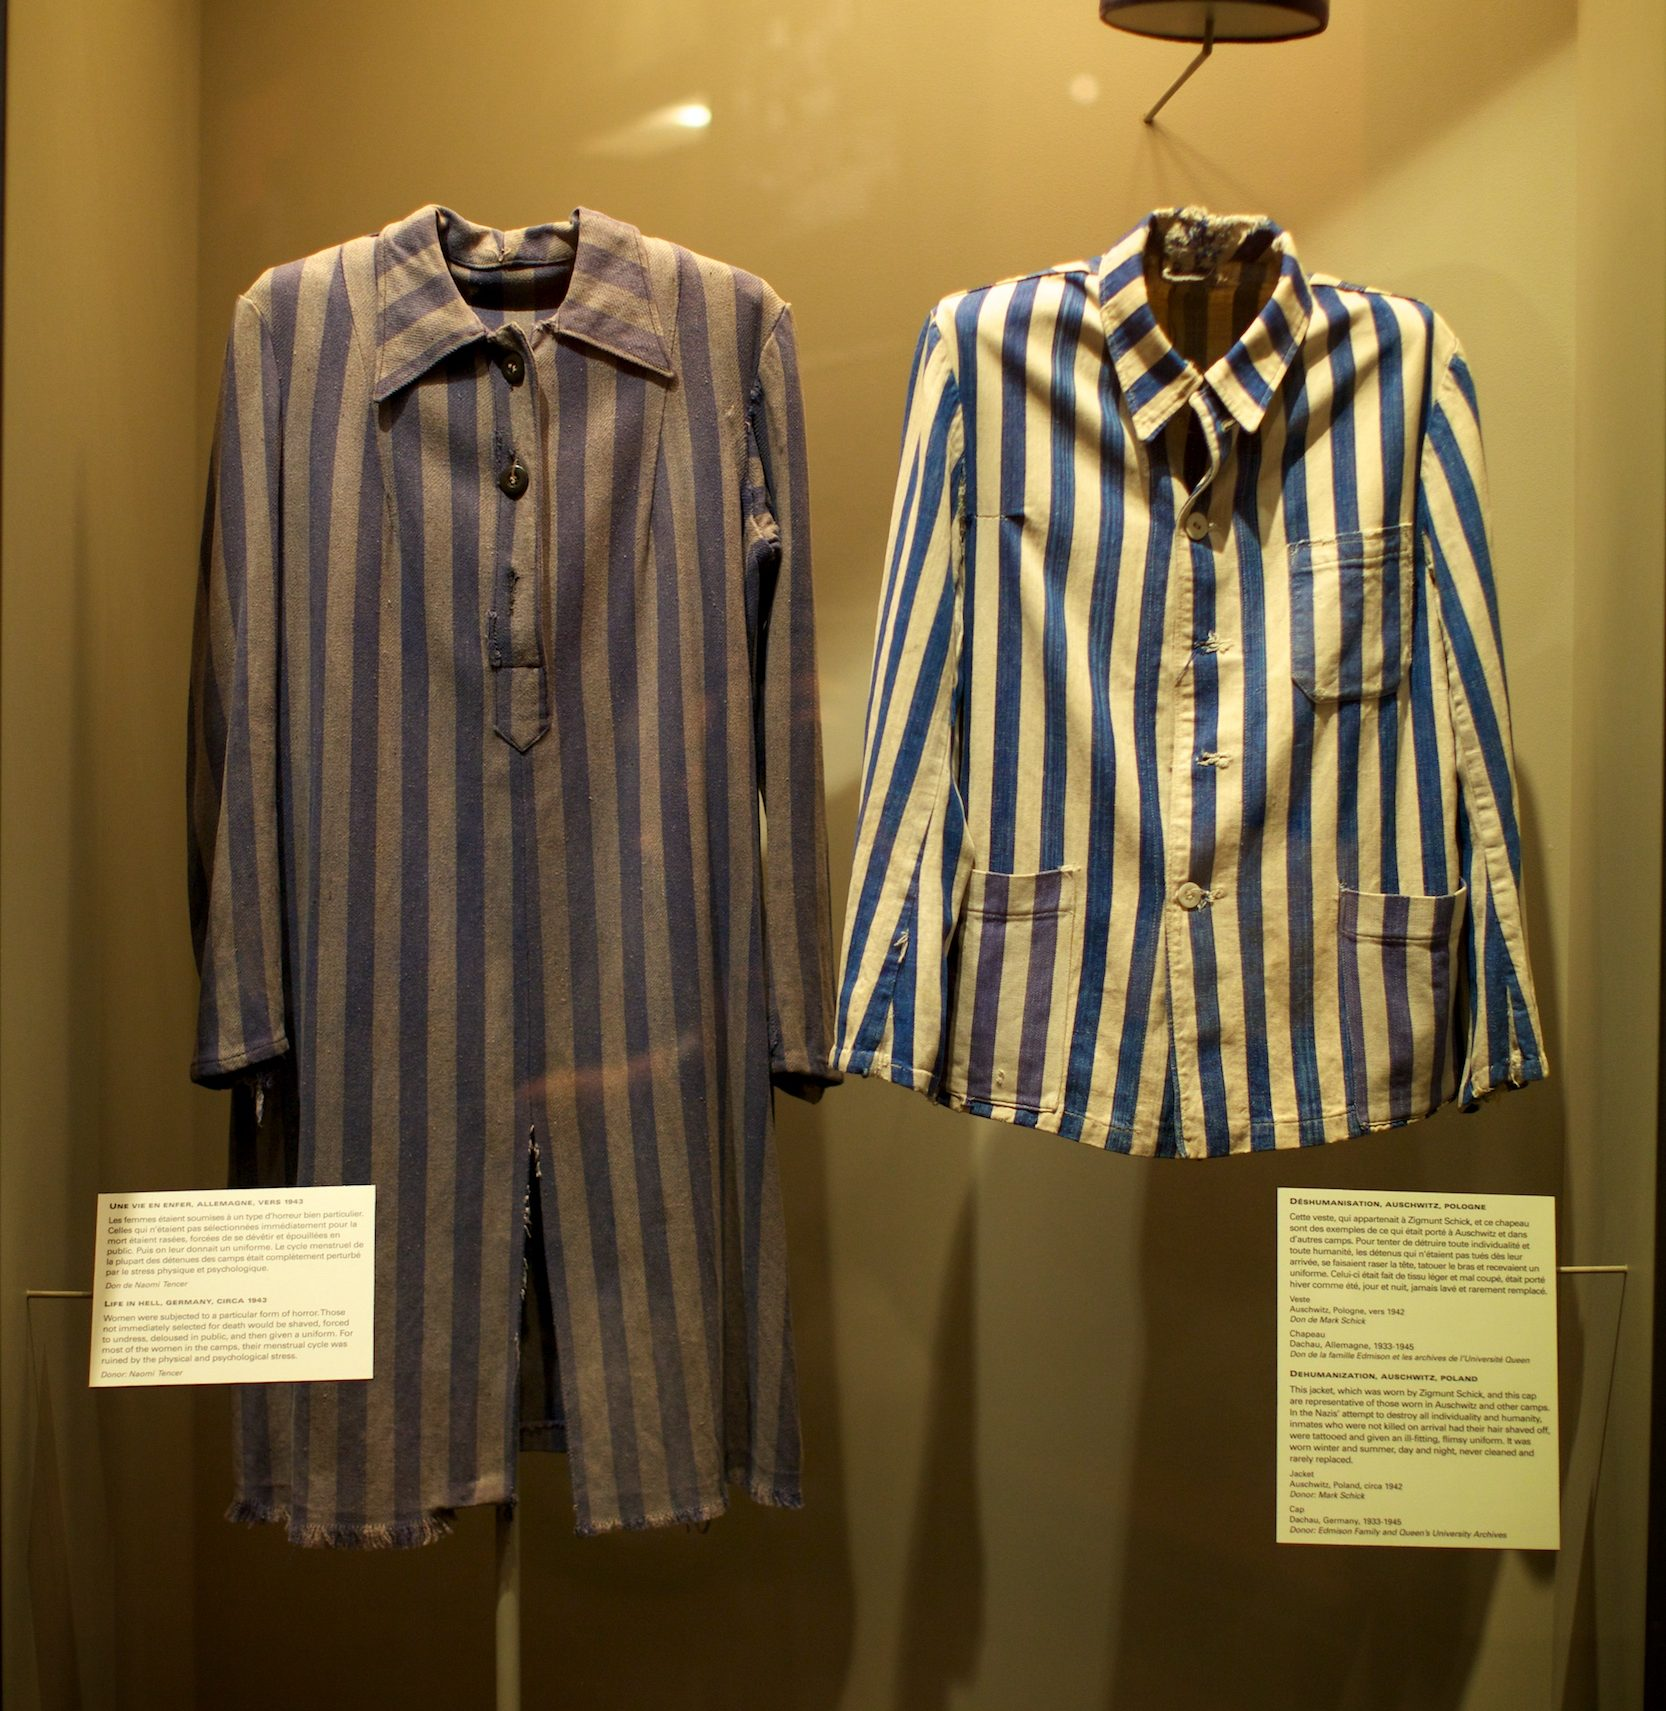 Prisoner uniforms worn by Zigmund Schick in Auschwitz and Sonia Aronowicz in a concentration camp. Poland, 1942-1945.